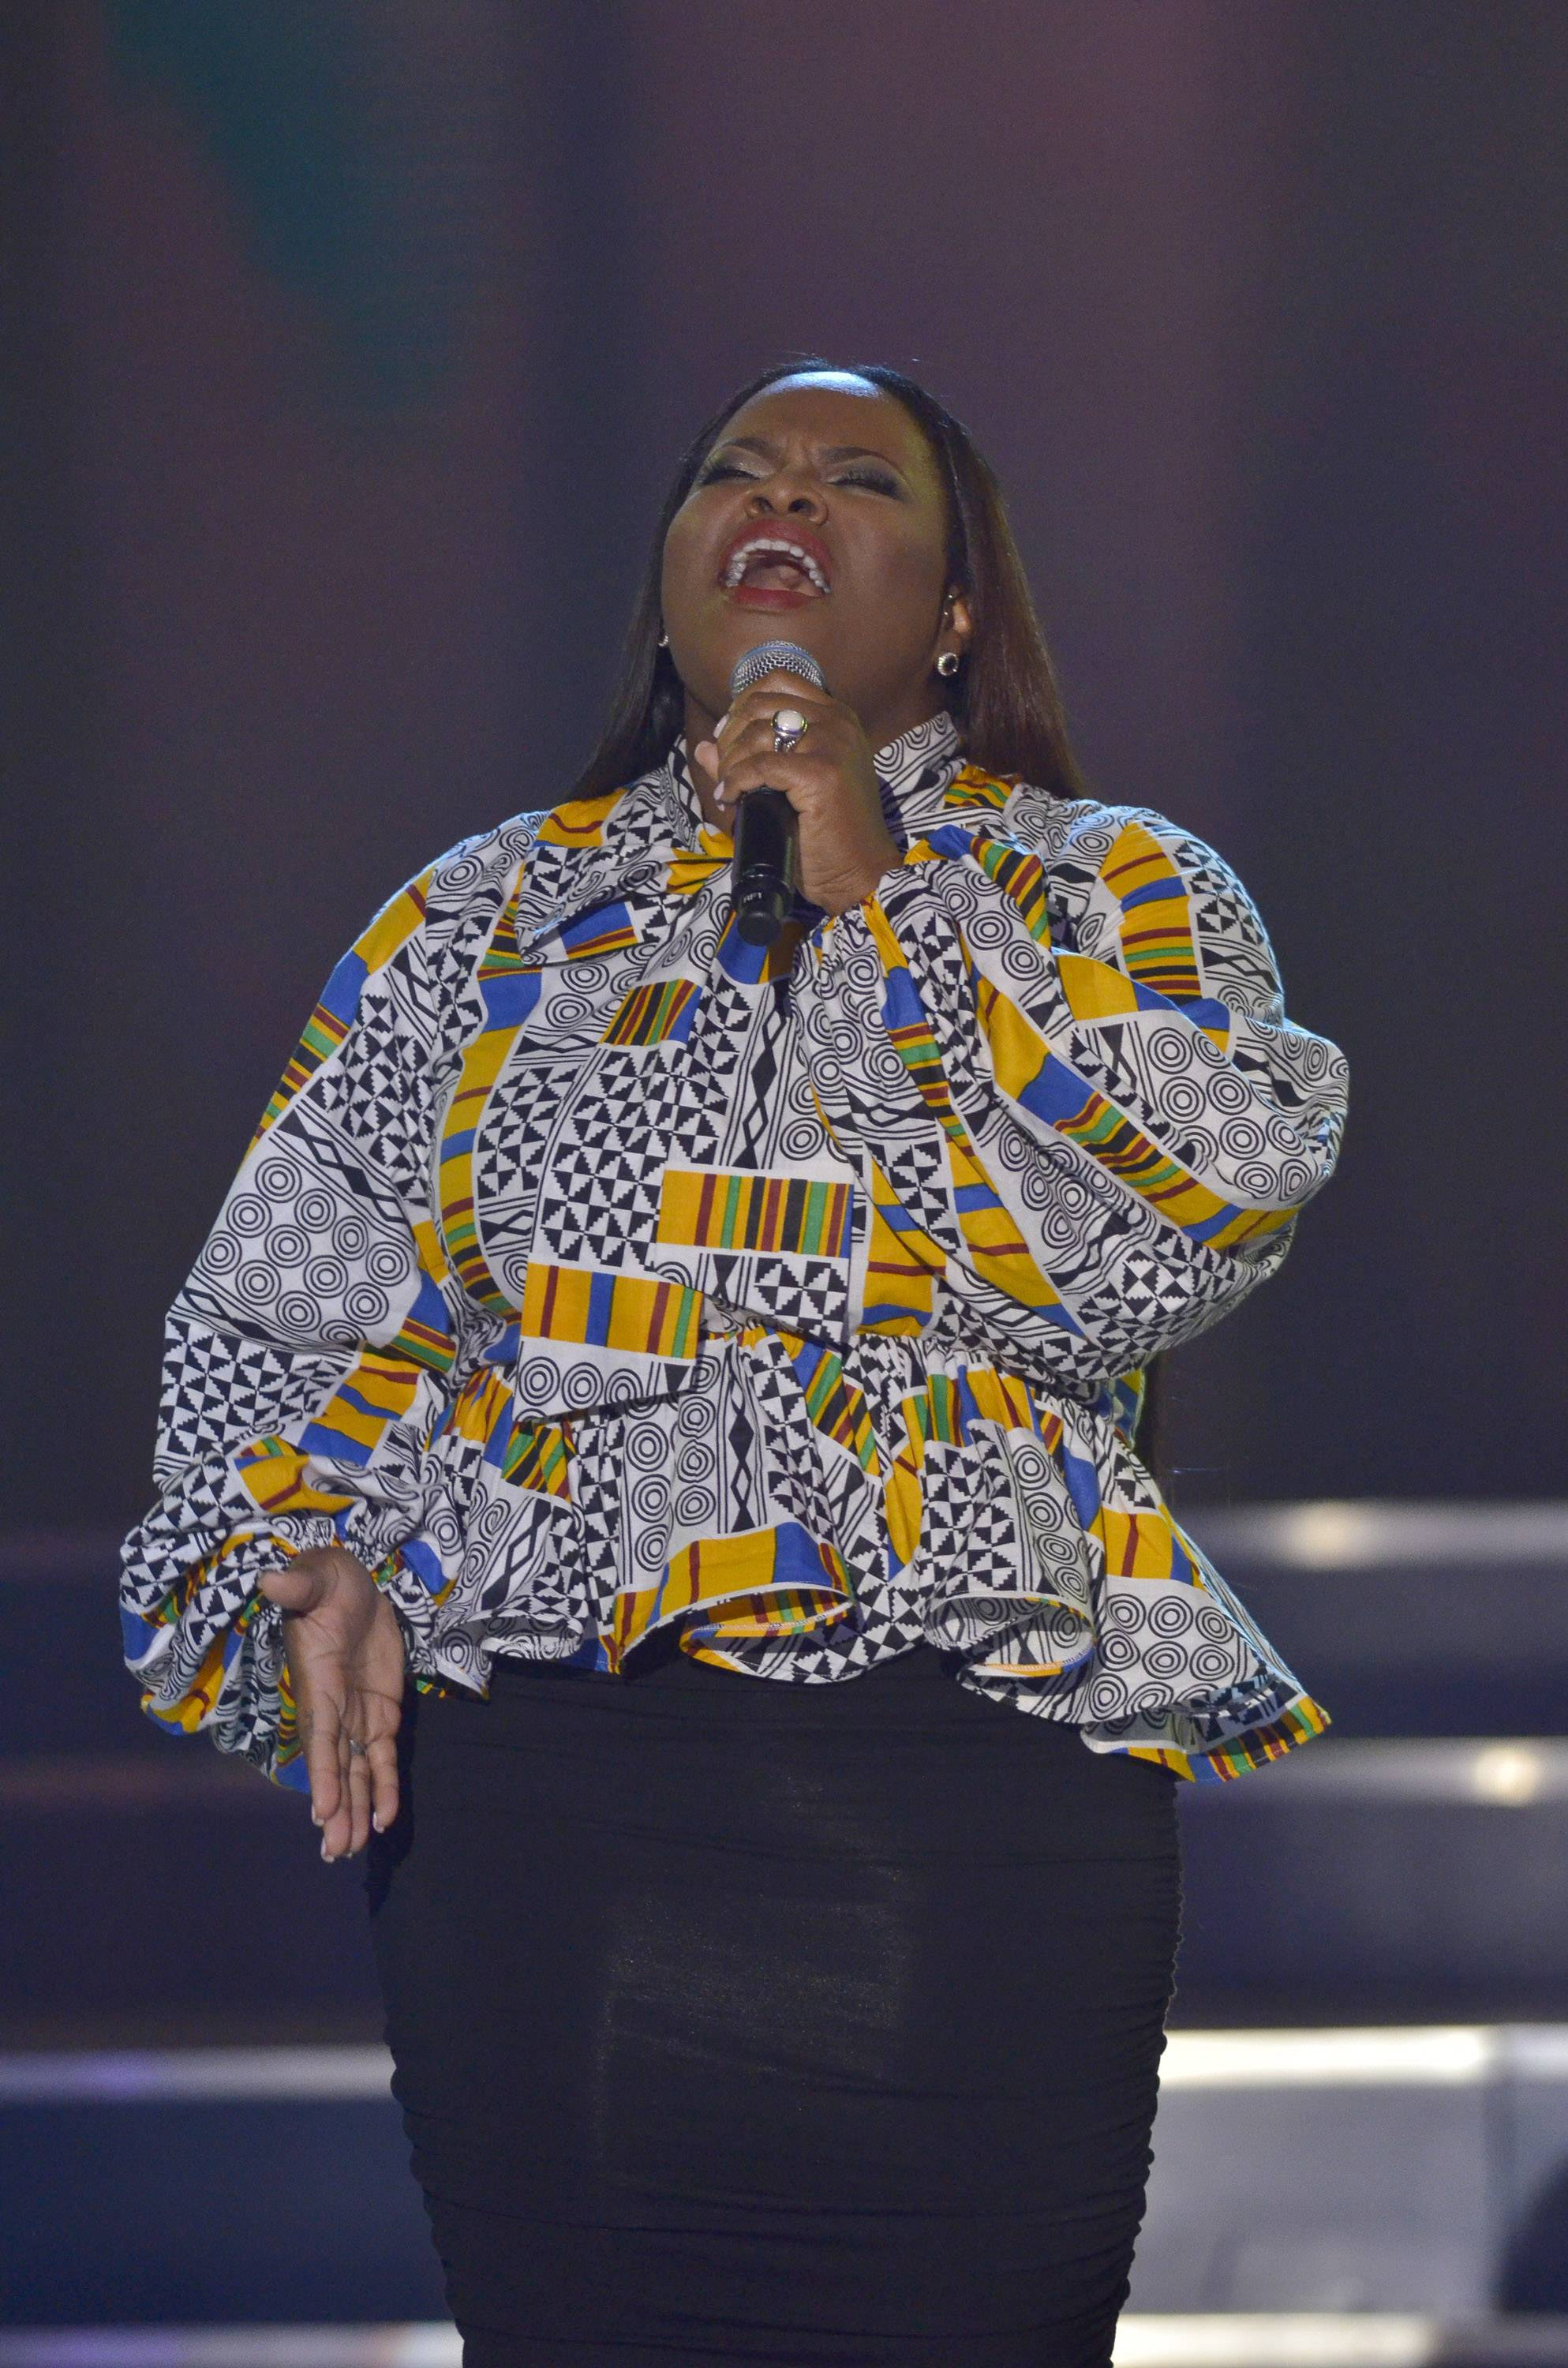 Steal the Show  - All eyes may have been on Tasha Cobbs's excellent performance, but the real focus was the presence of God moving. (Photo: Kris Connor/Getty Images for BET Networks)